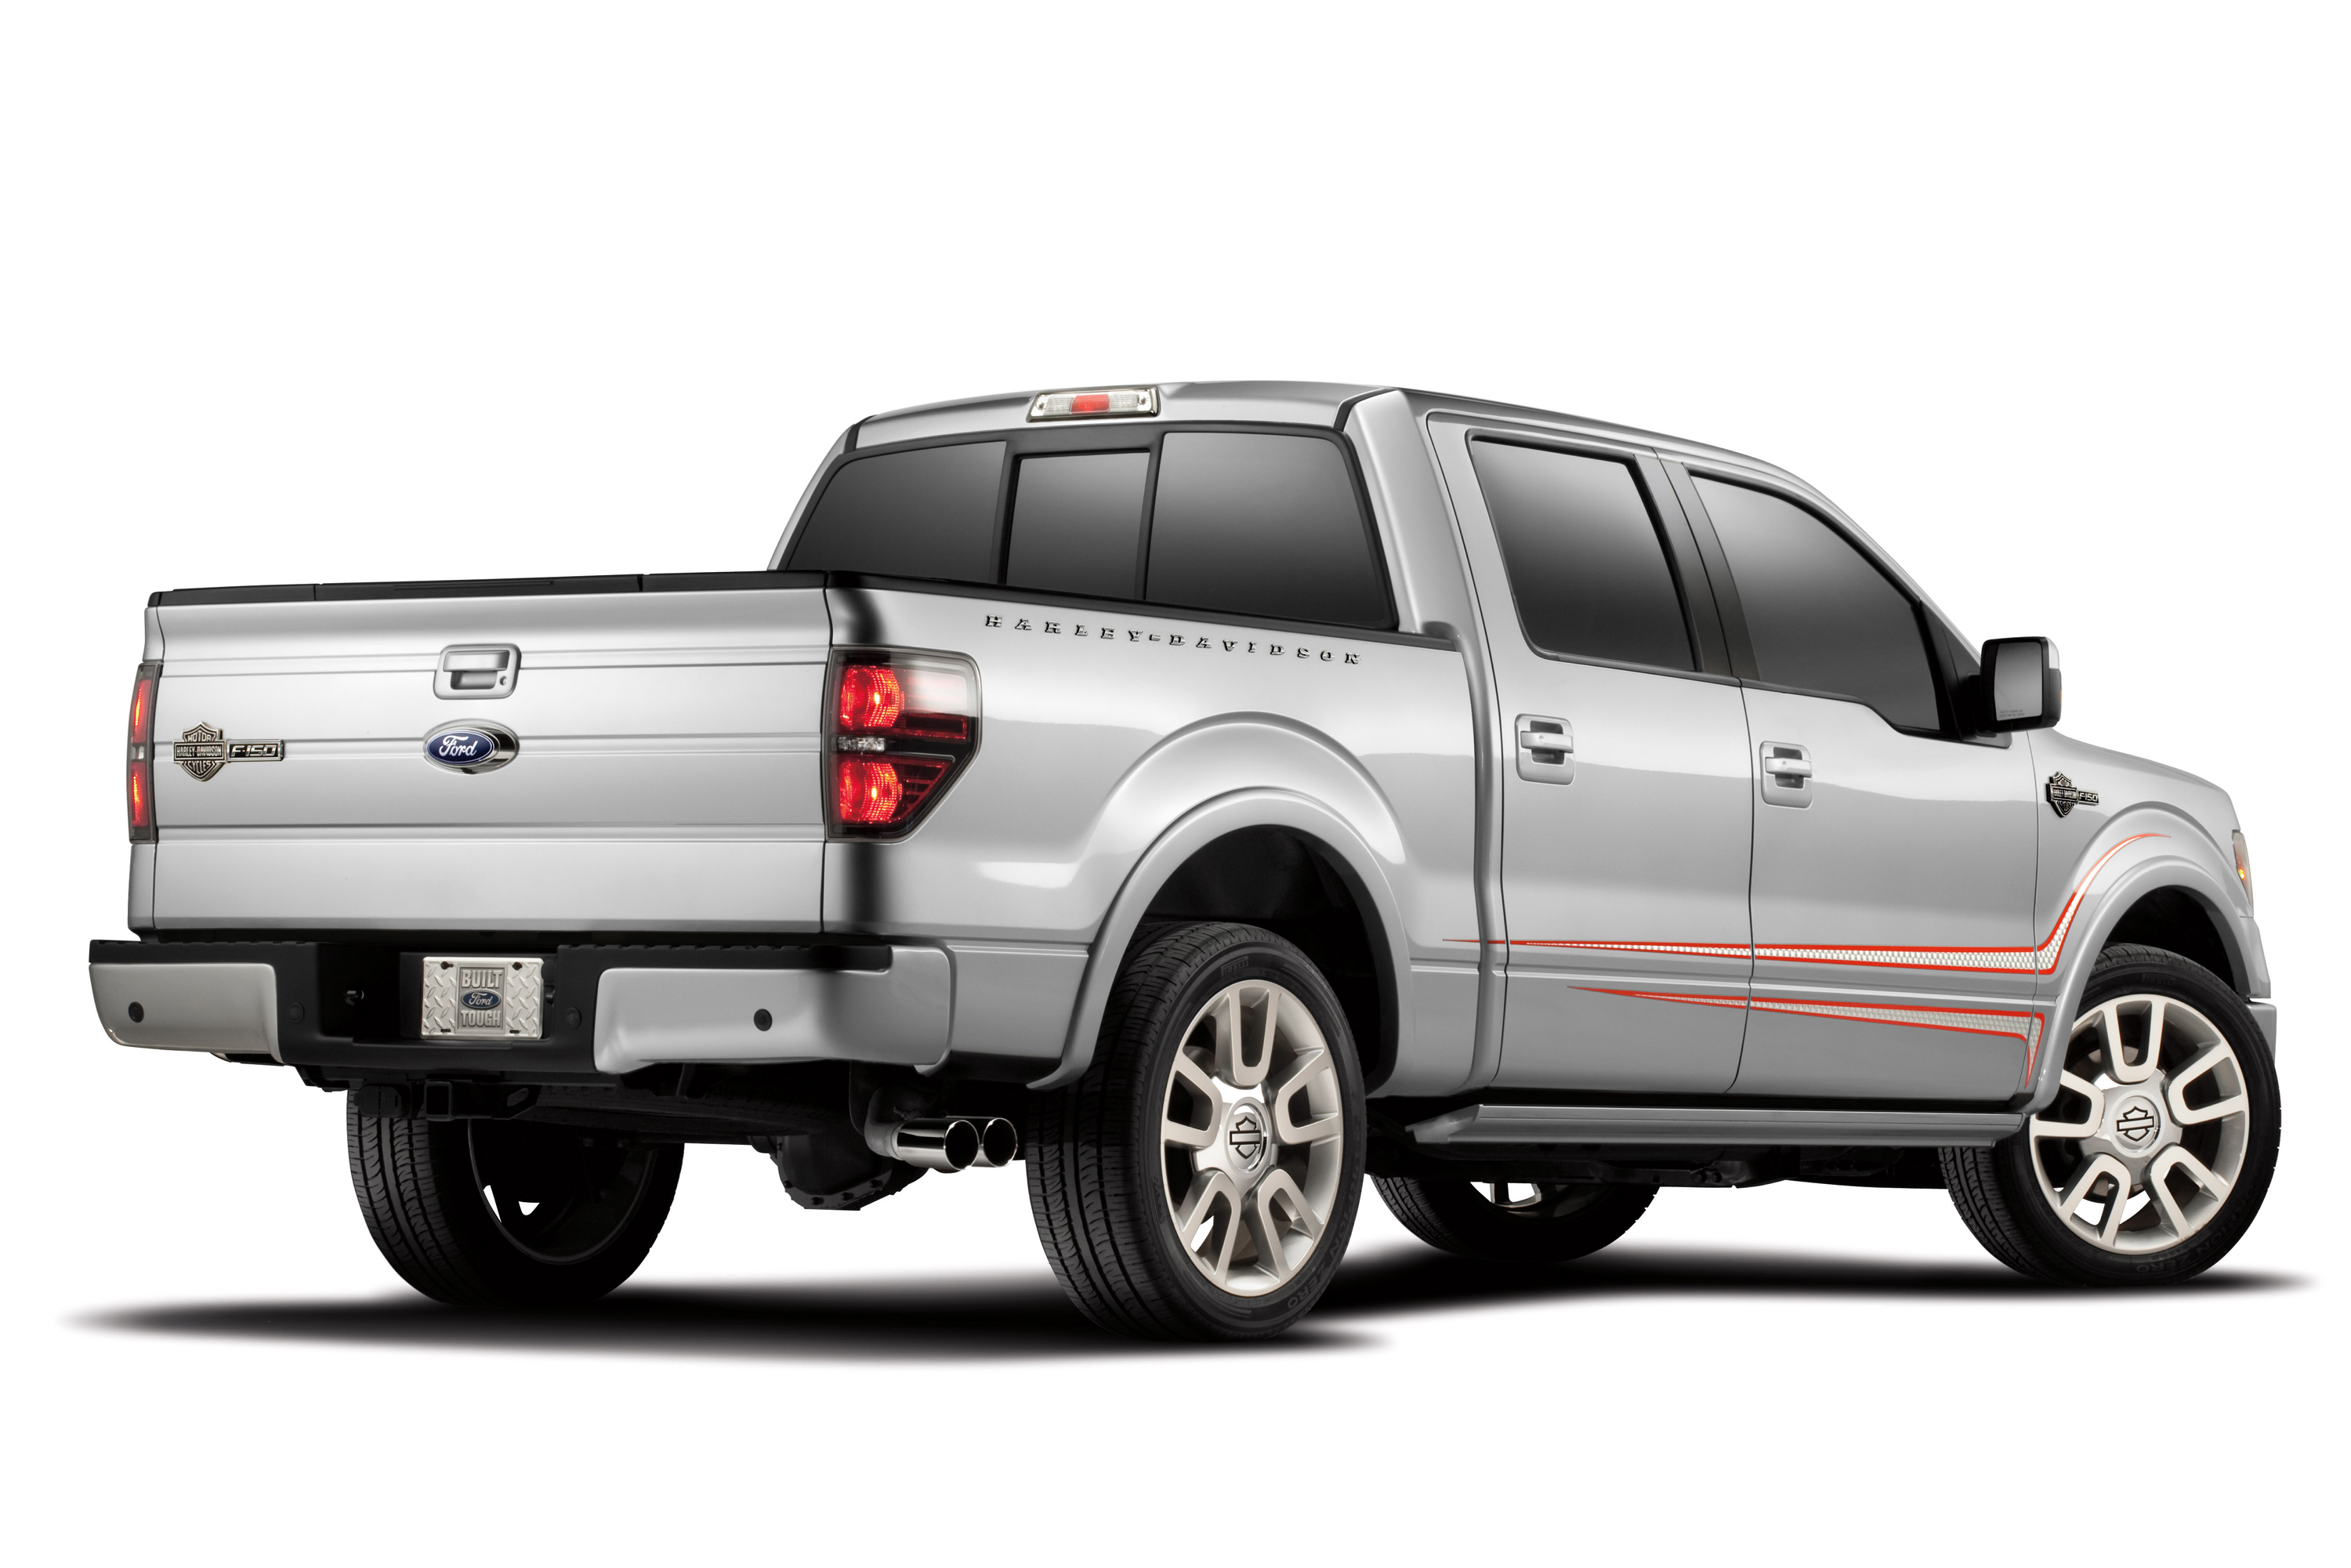 2011 Ford Harley Davidson F 150 Road Reality F150